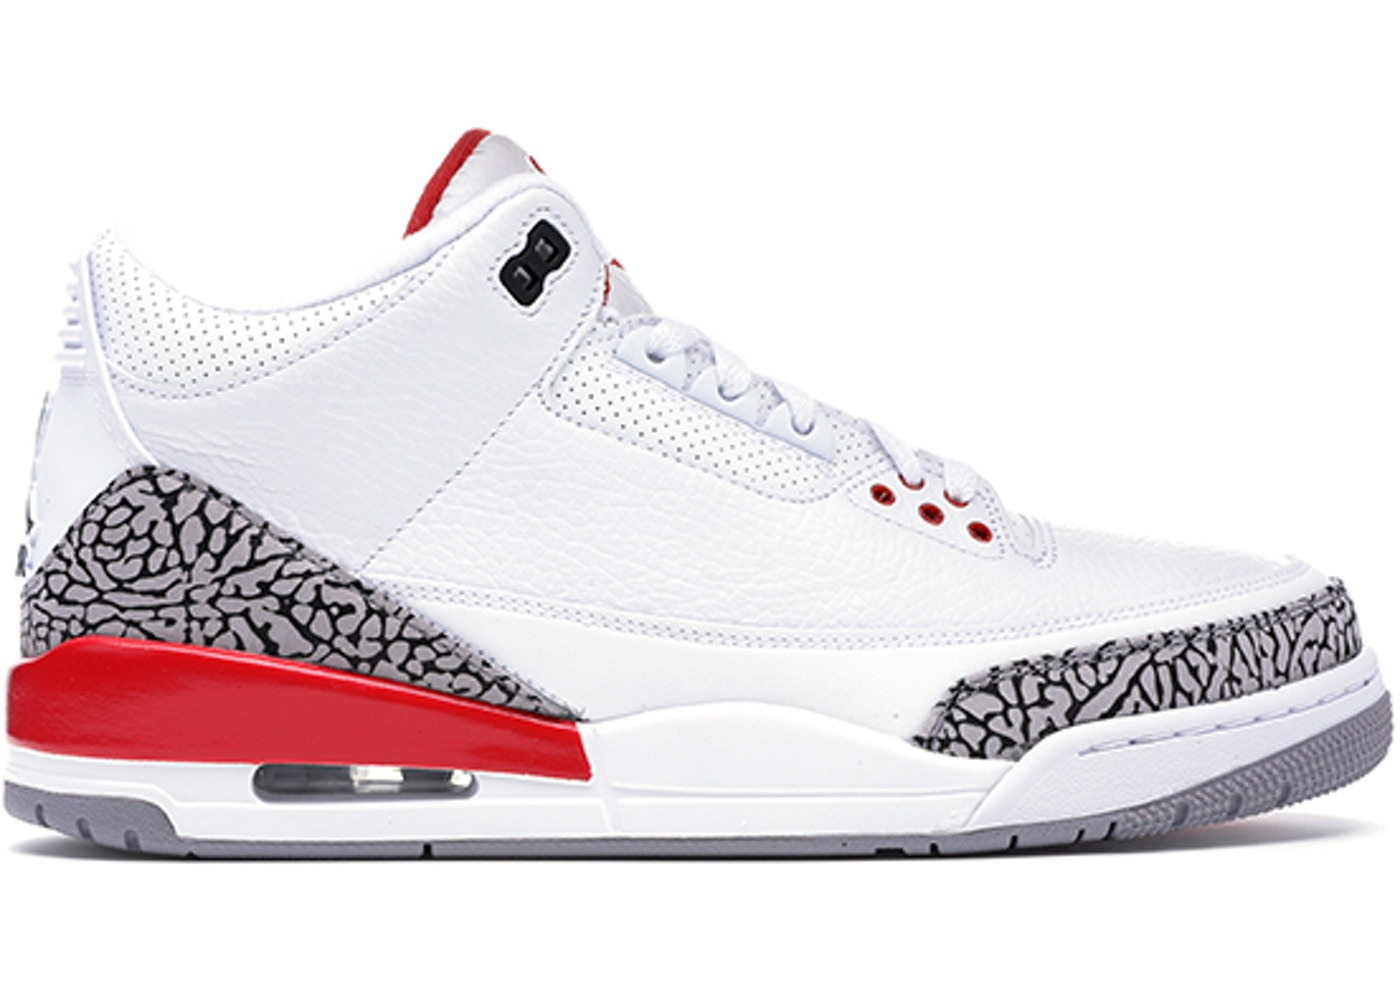 a6f879f567c559 Buy Air Jordan 3 Shoes   Deadstock Sneakers